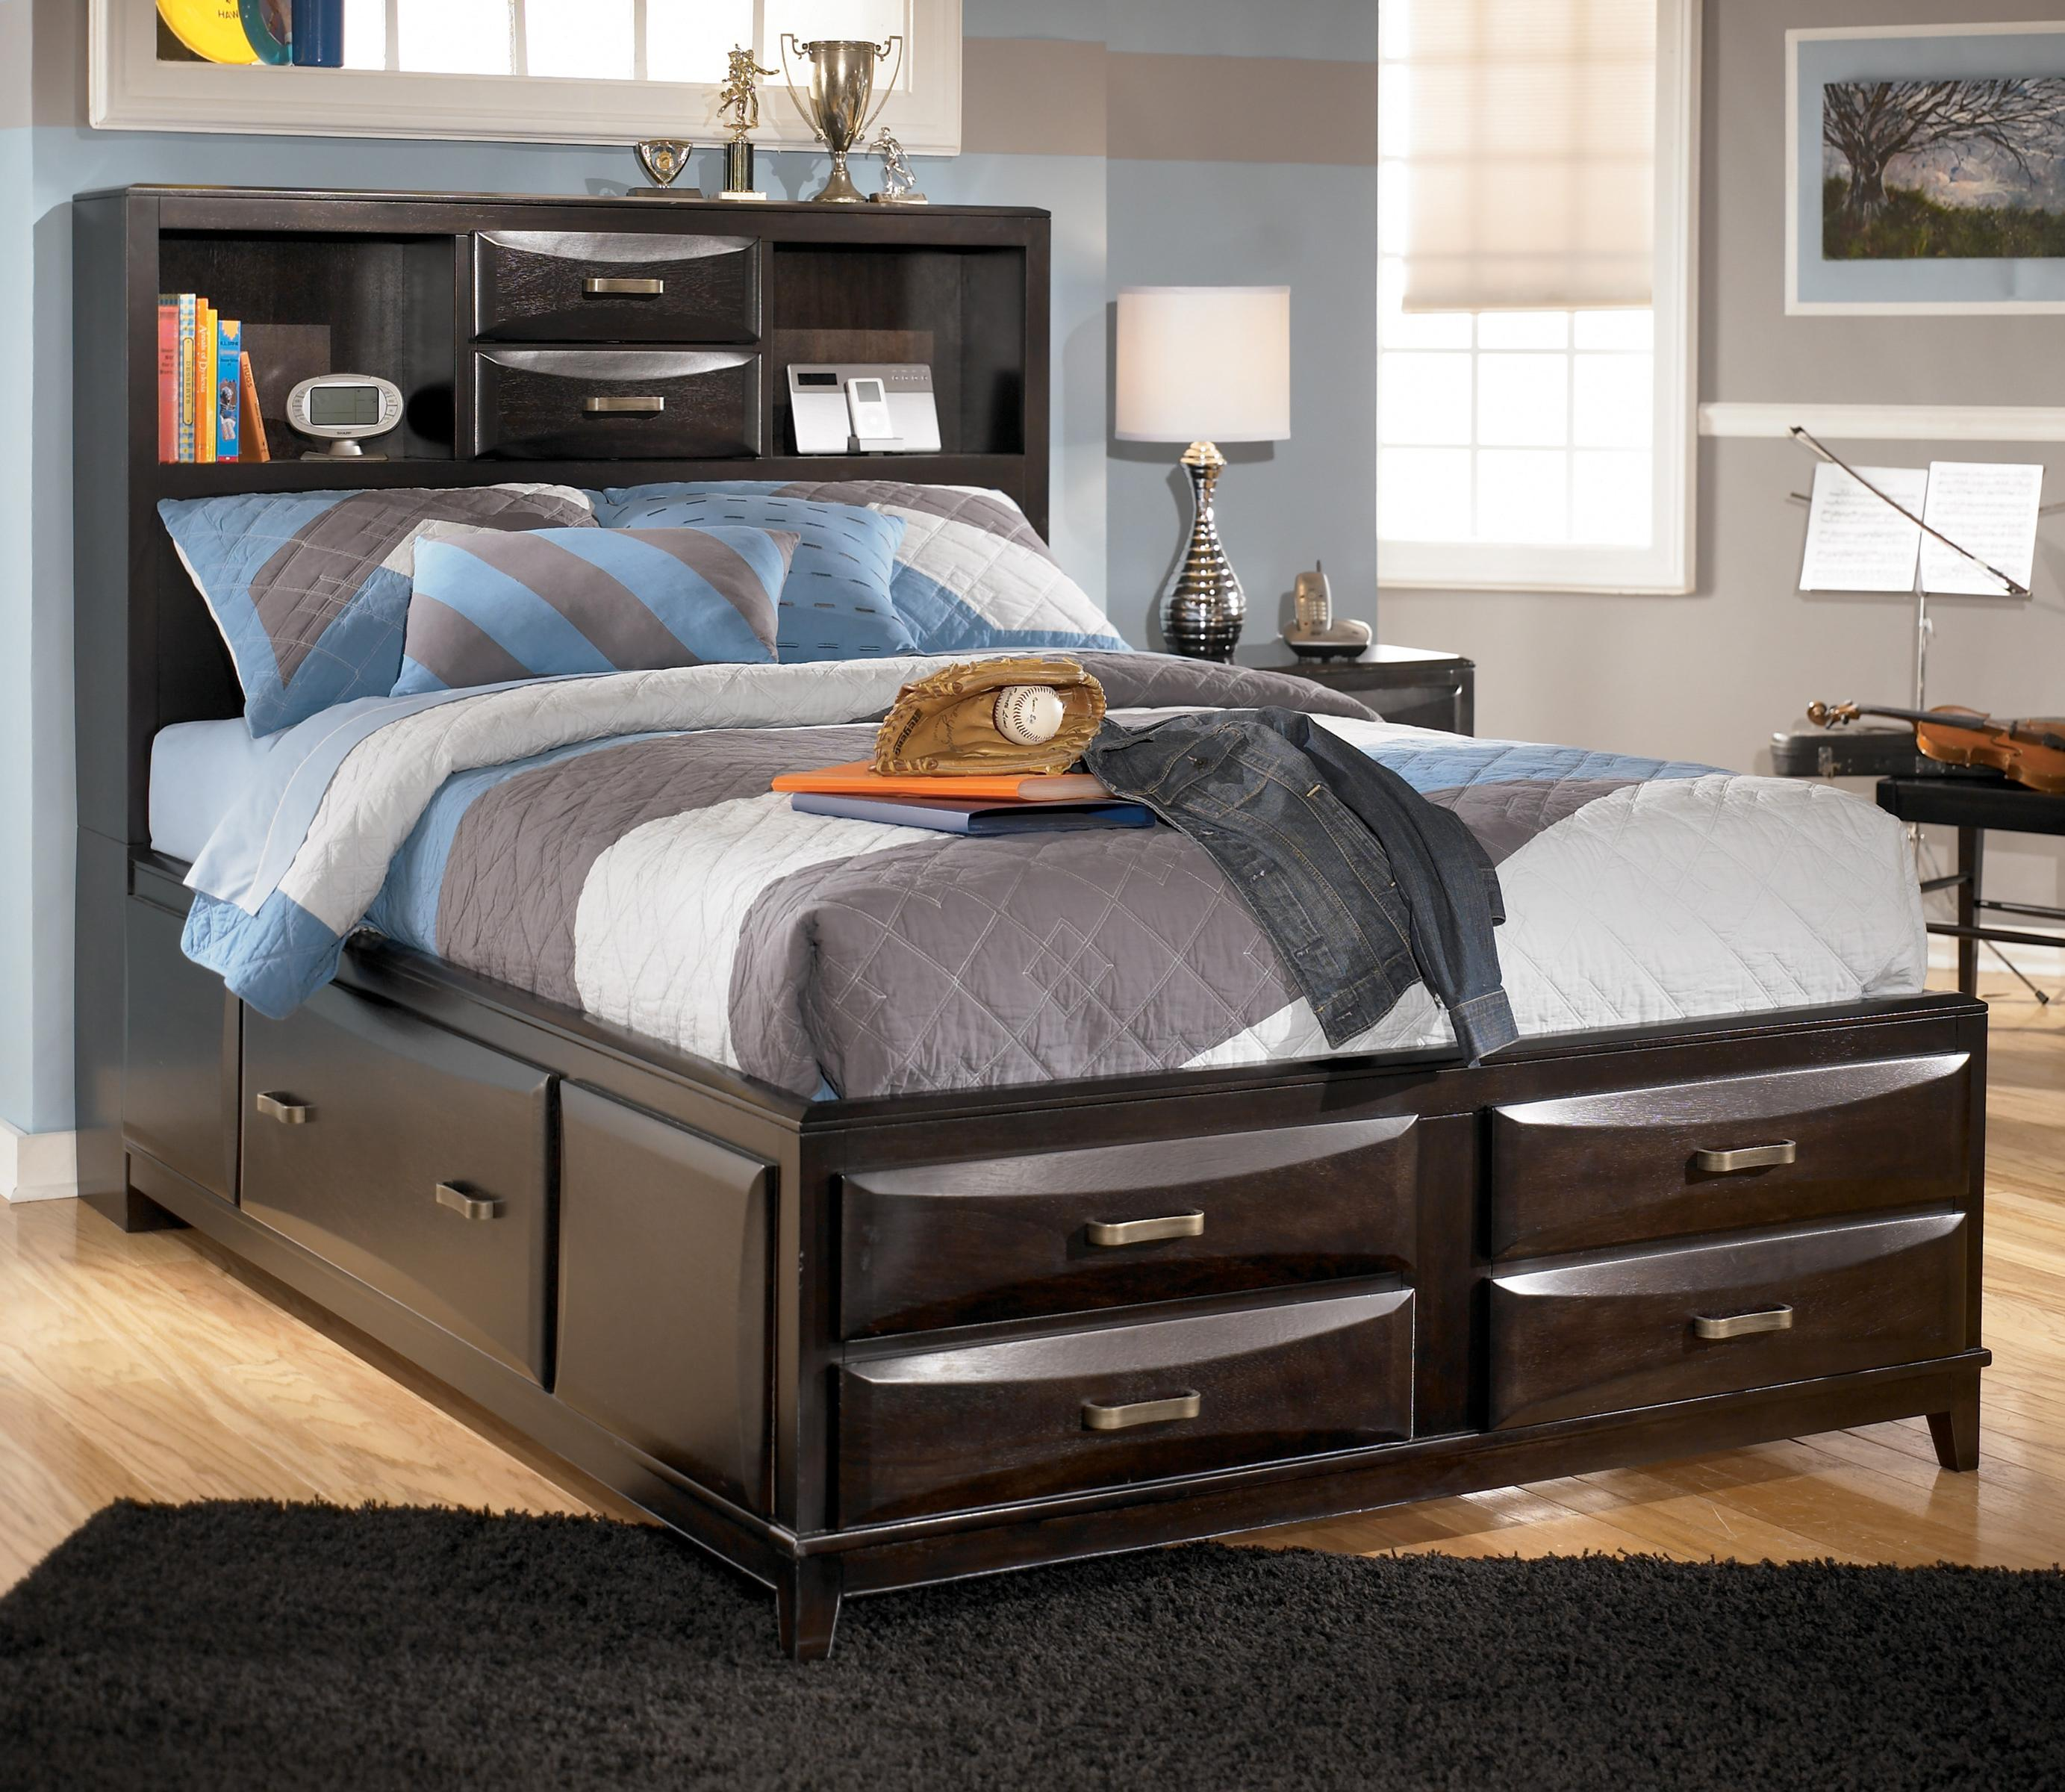 ashley furniture kira full storage bed value city furniture captain 39 s beds. Black Bedroom Furniture Sets. Home Design Ideas